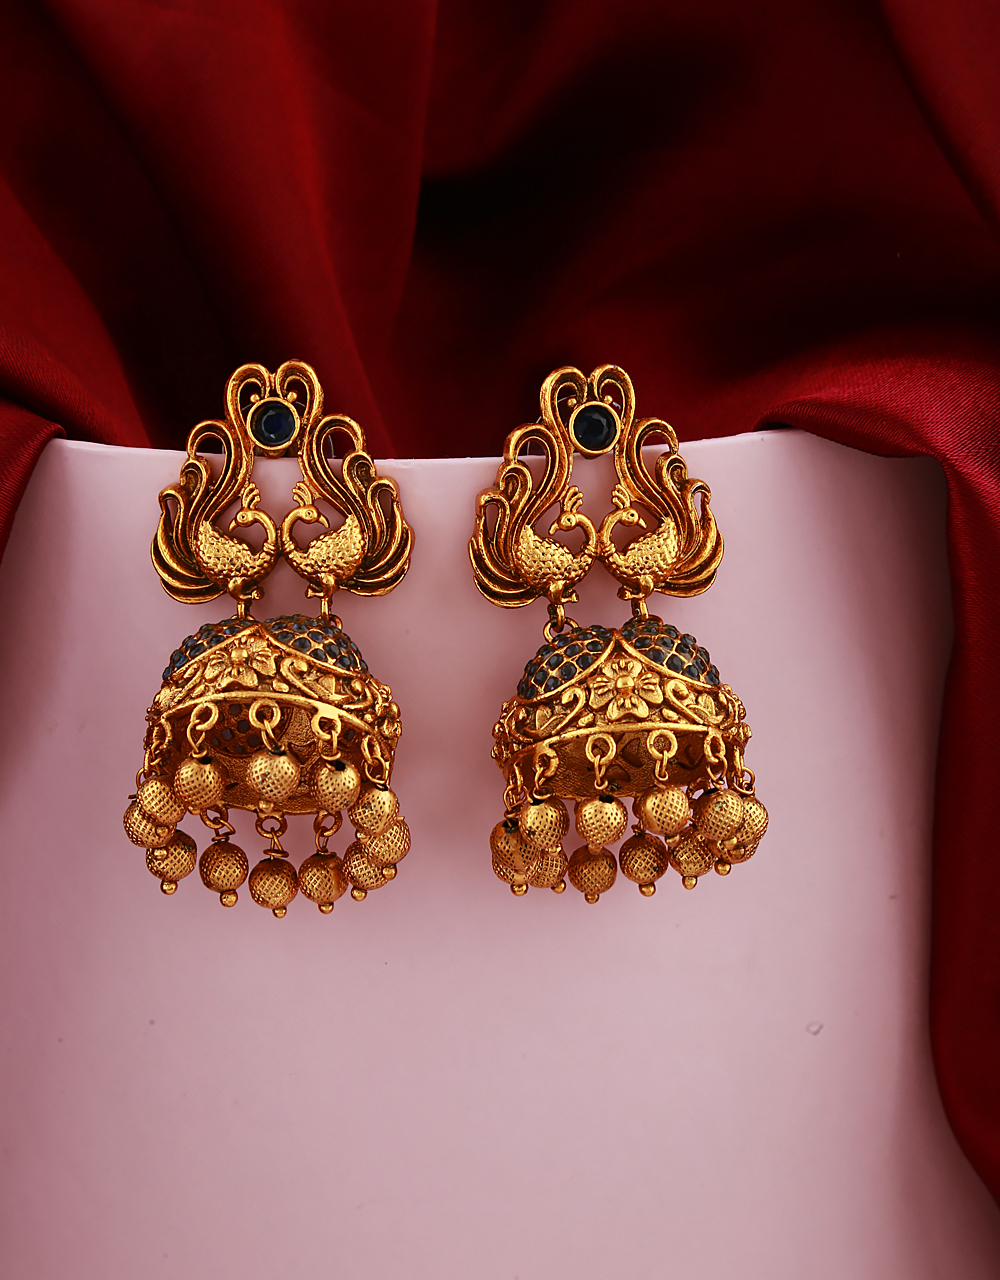 Gold Finish Gold Beads Droplet Earrings Pair Studded With Blue Stones.